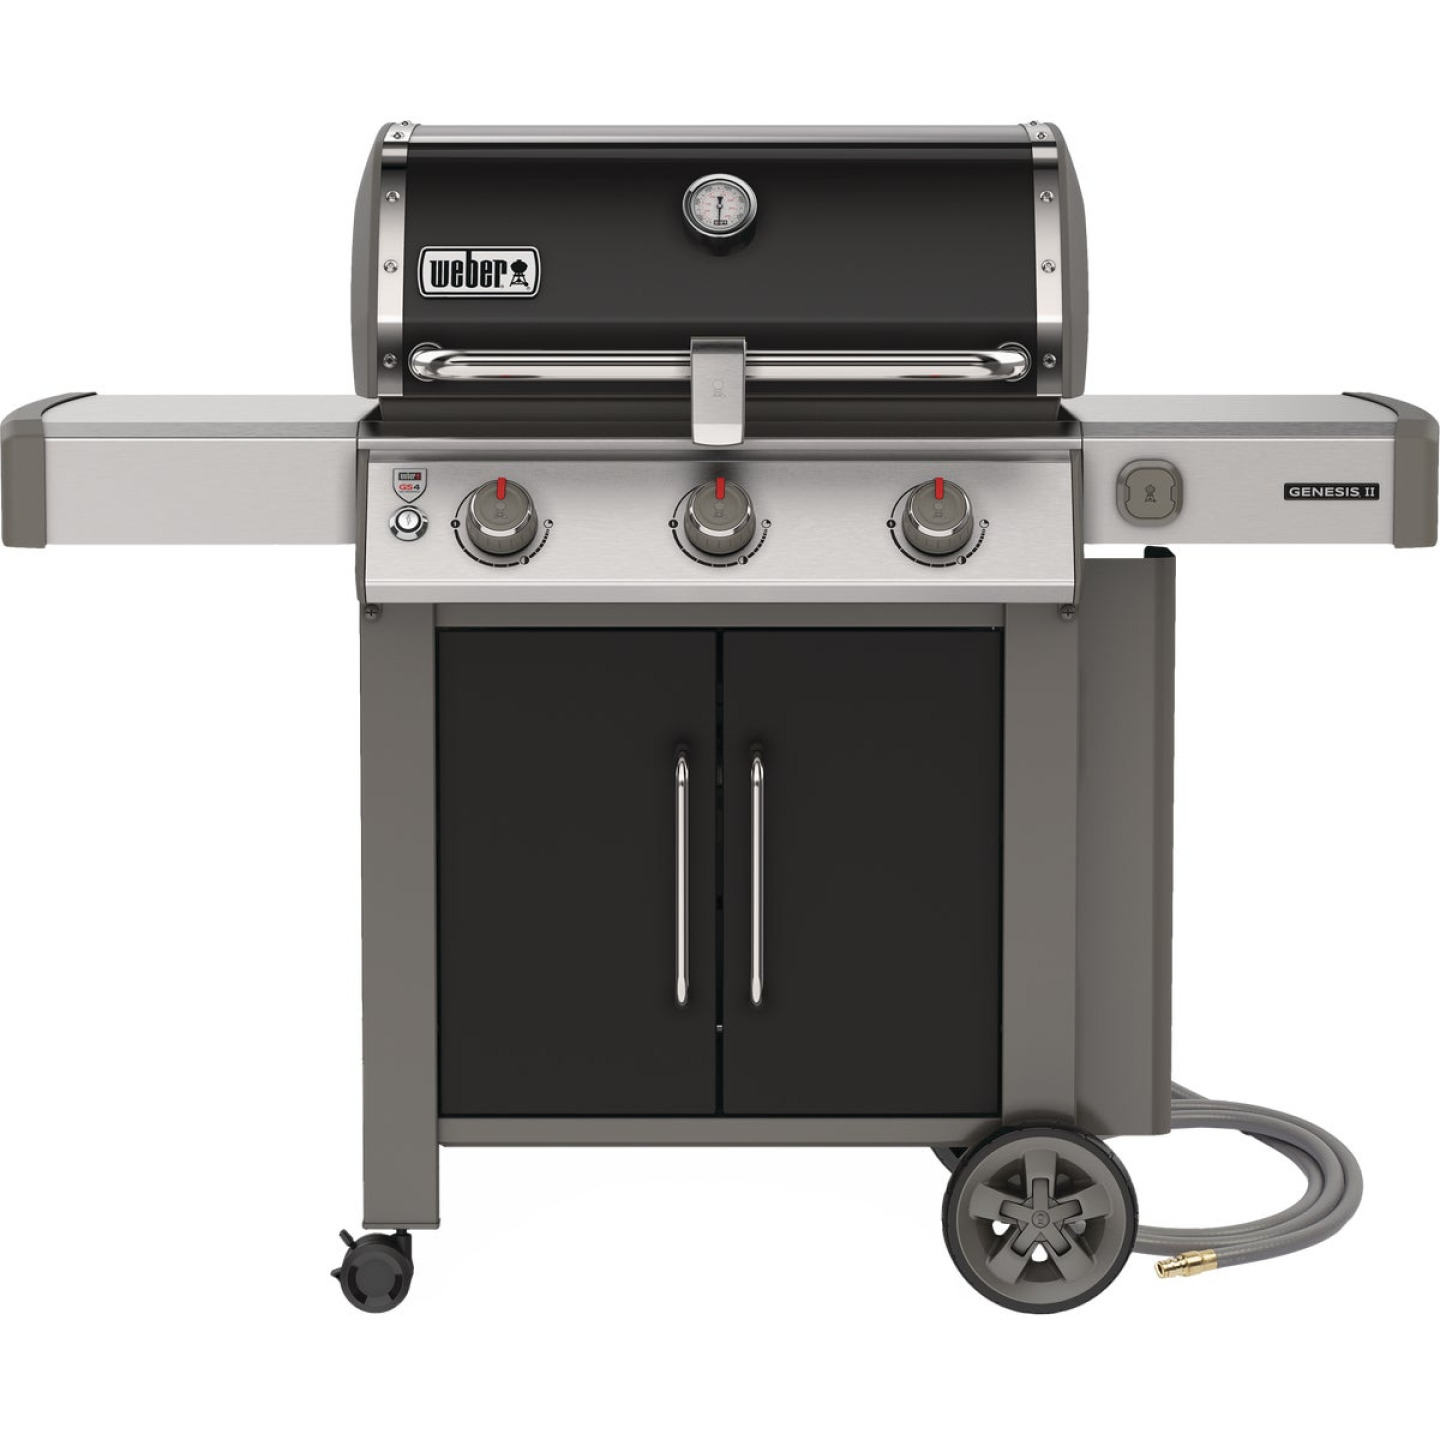 Genesis II SE-315 3-Burner Black 39,000 BTU Natural Gas Grill Image 1